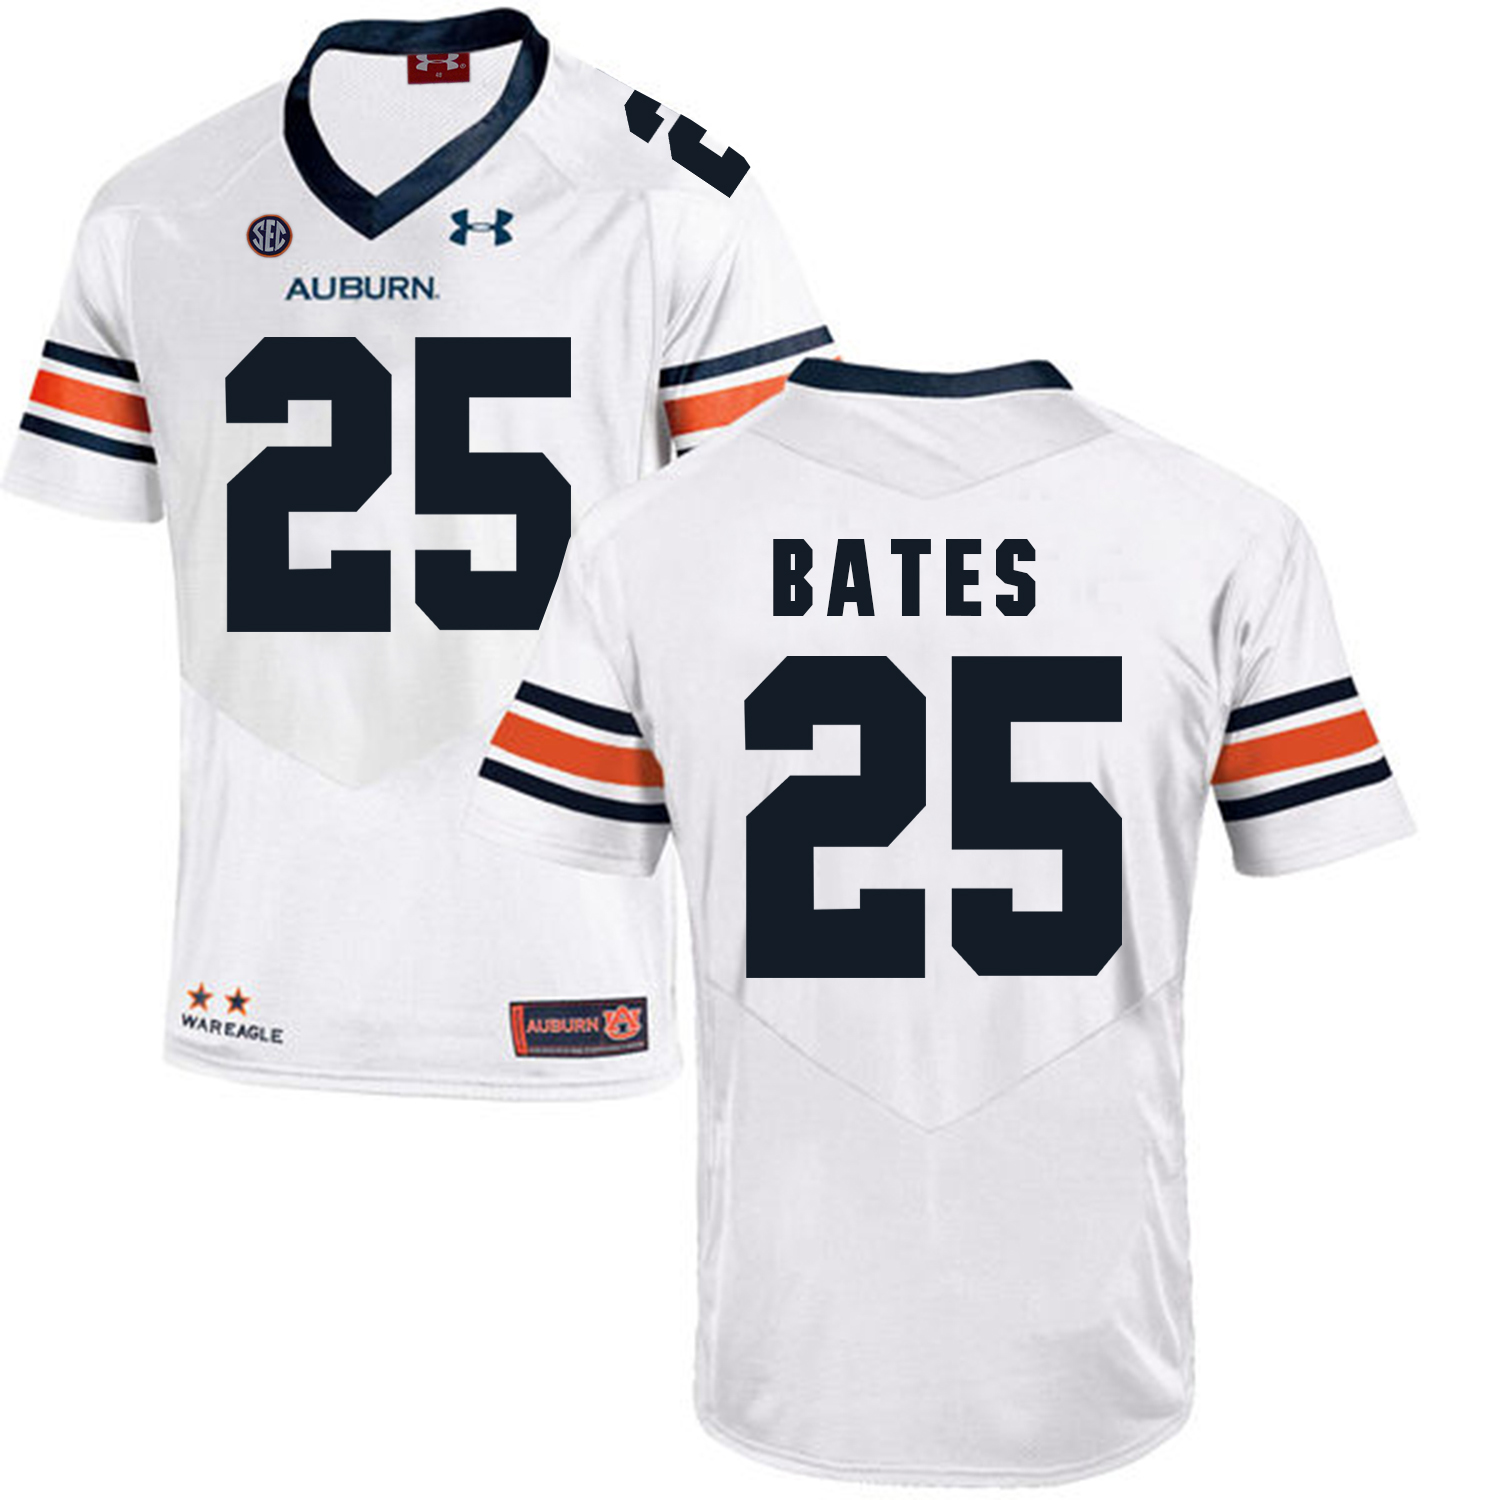 Auburn Tigers 25 Daren Bates White College Football Jersey